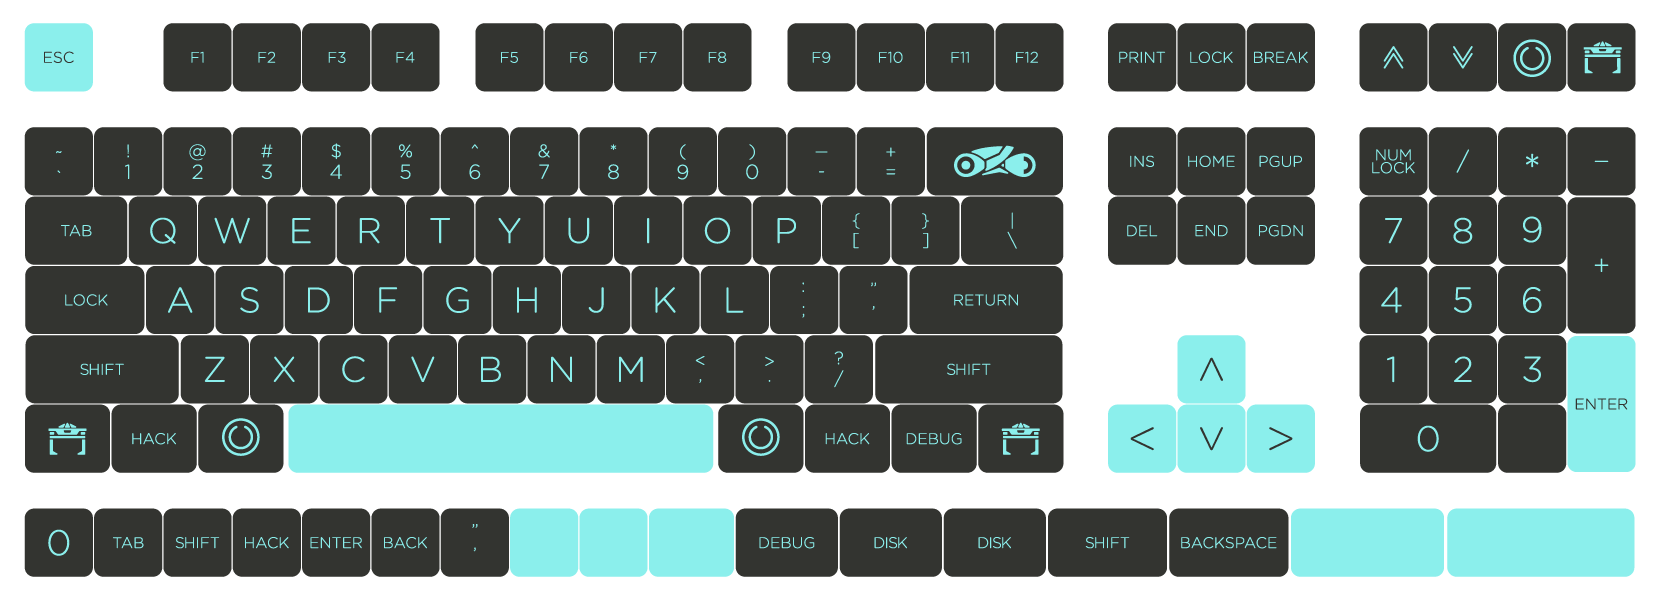 LIGHT CYCLE (Keycaps) – TheVan Keyboards